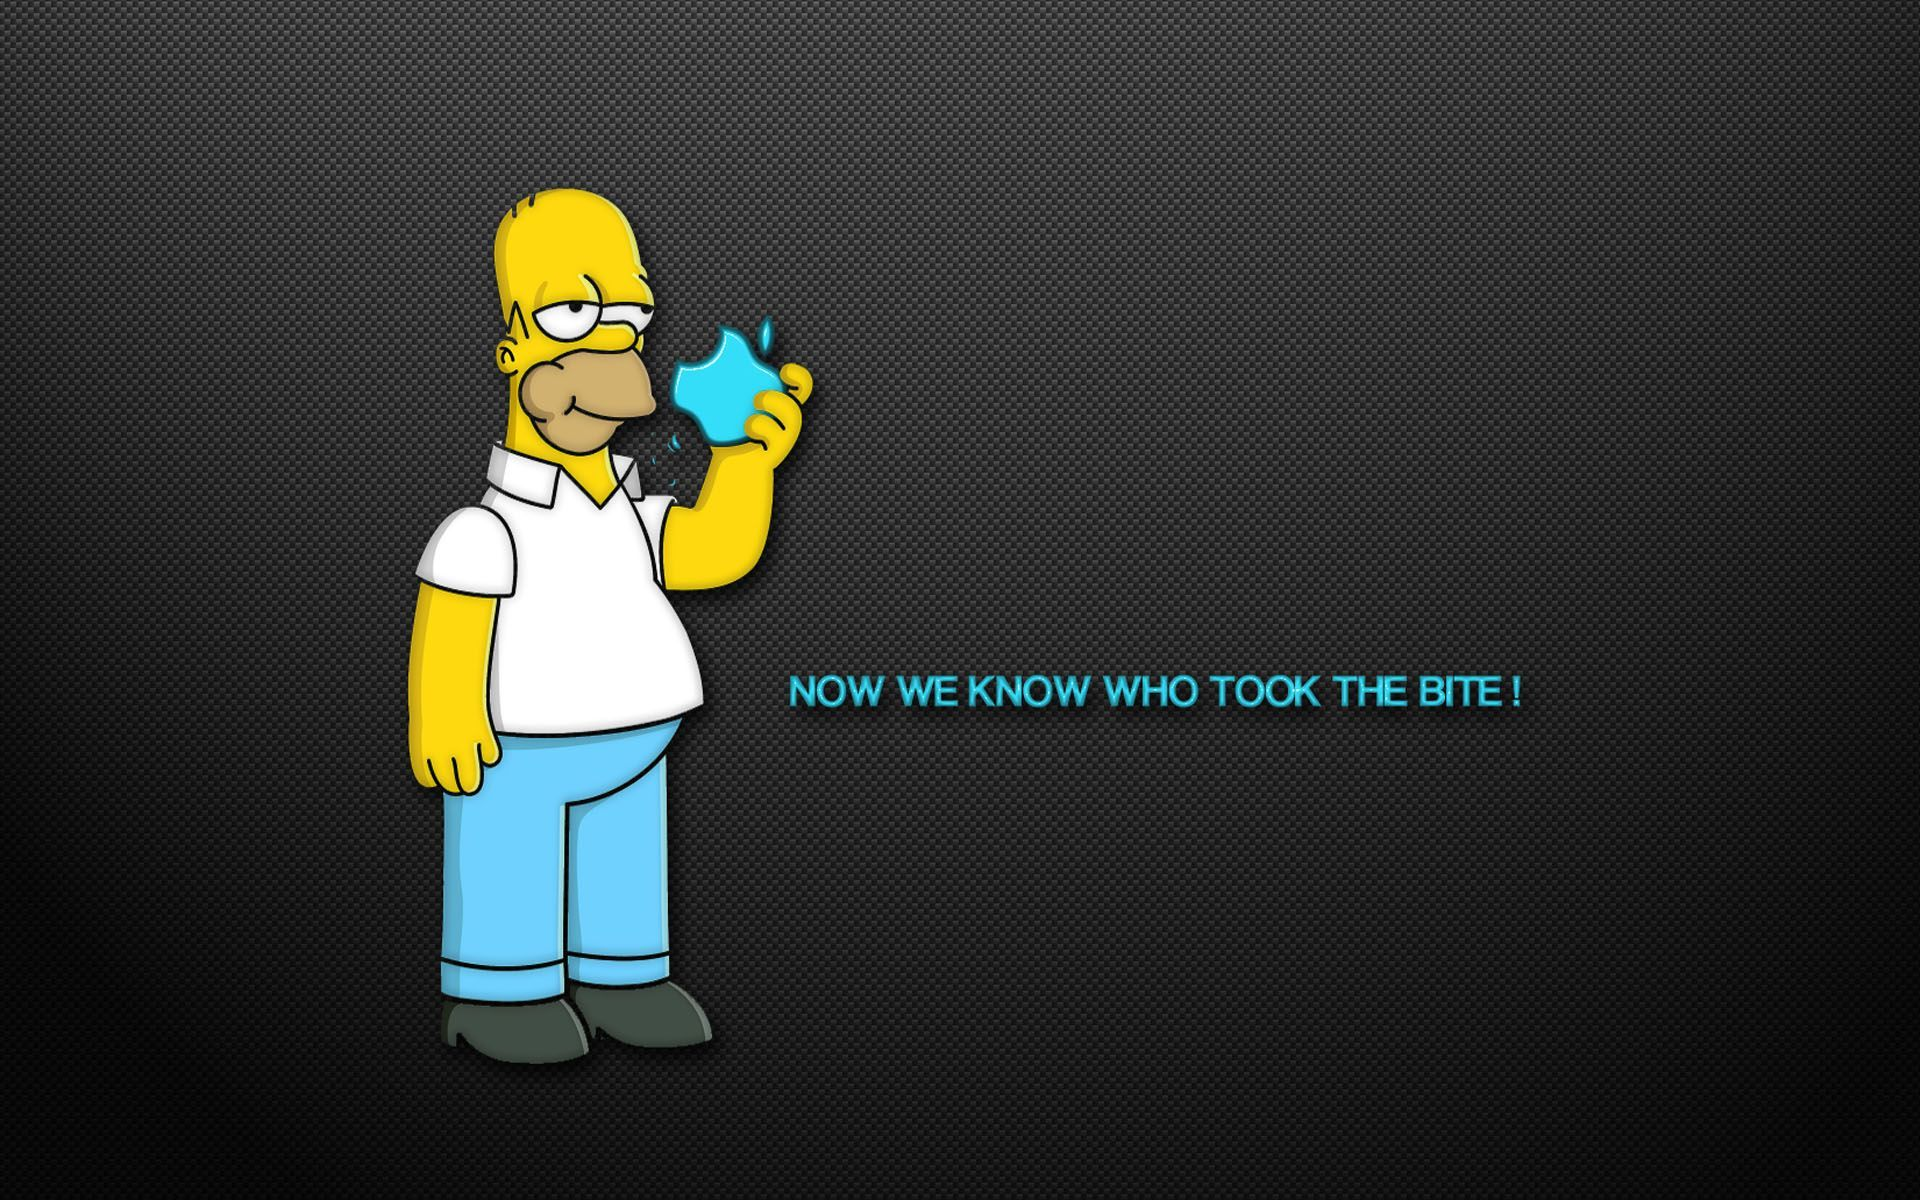 wallpaper simpsons (40 wallpapers) – adorable wallpapers